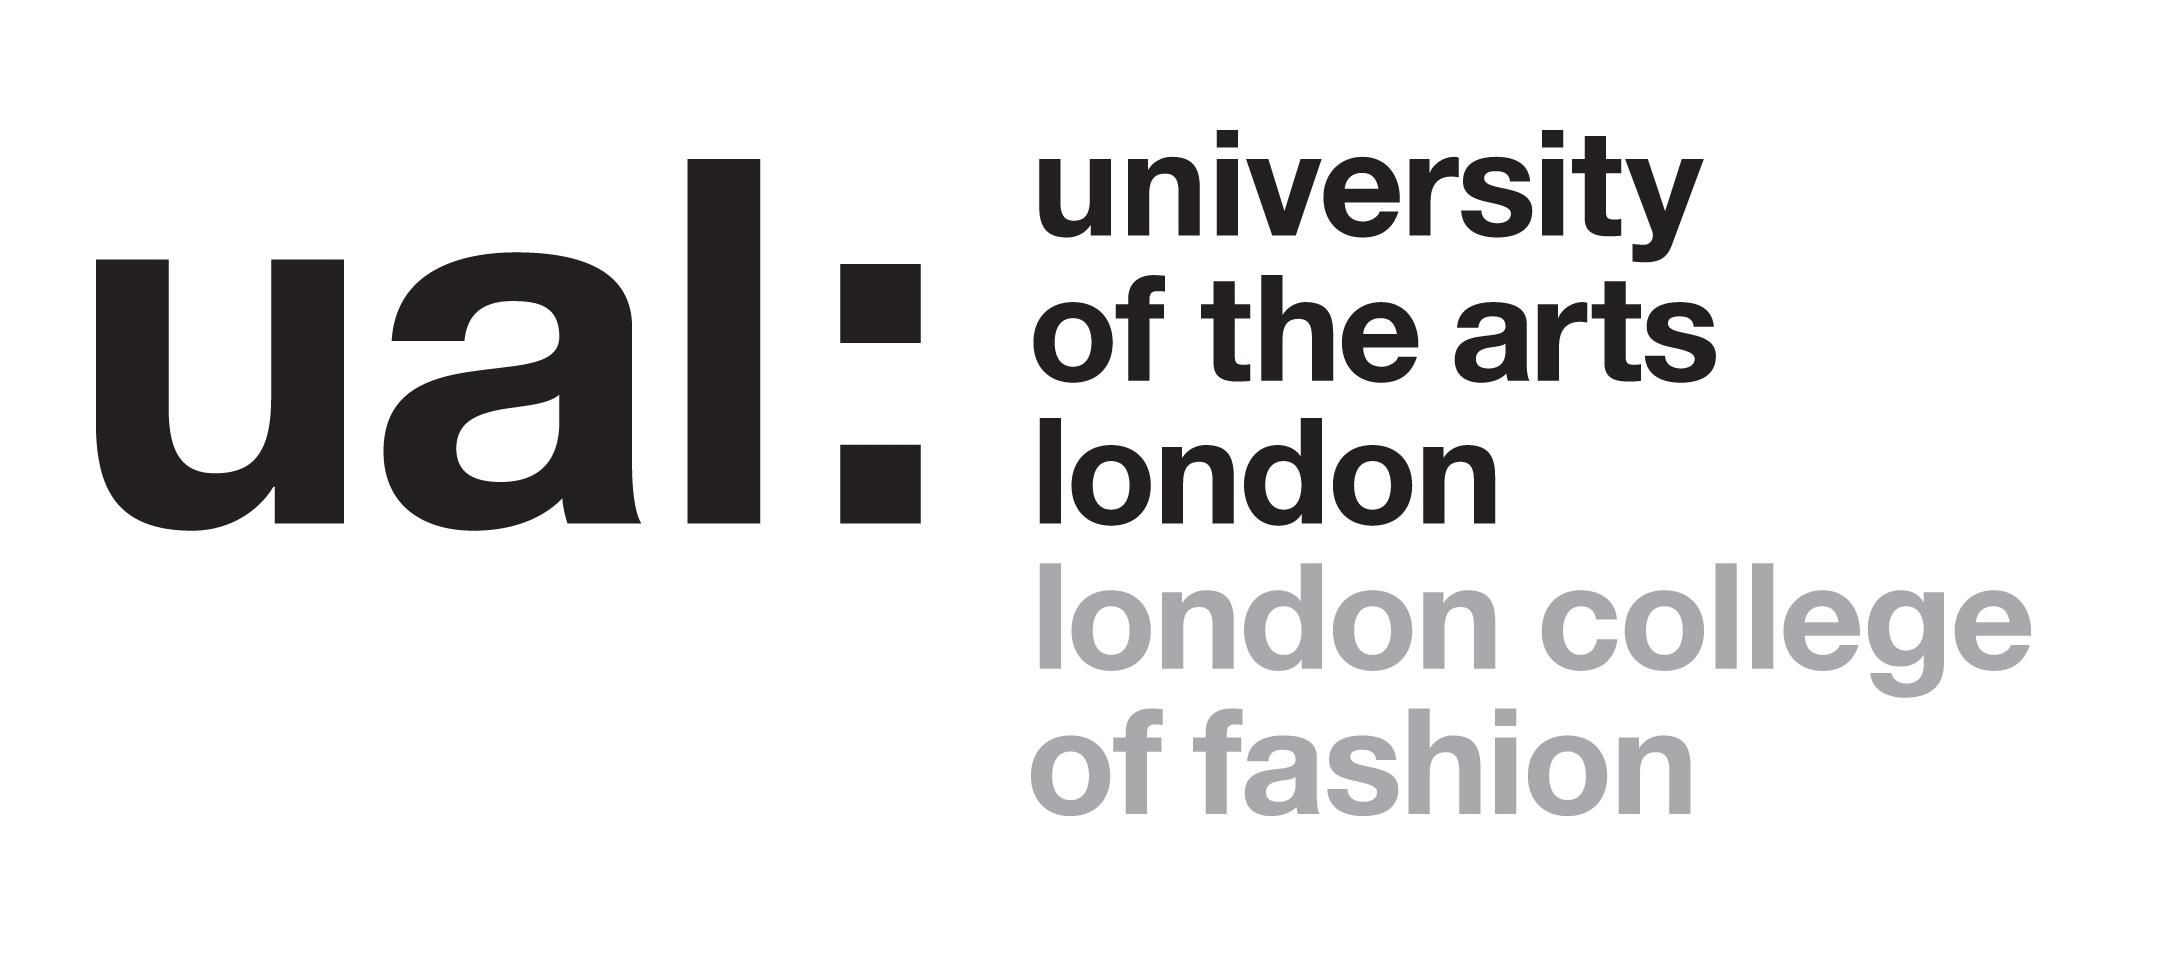 S716_London_College_of_fashion_logo.jpg